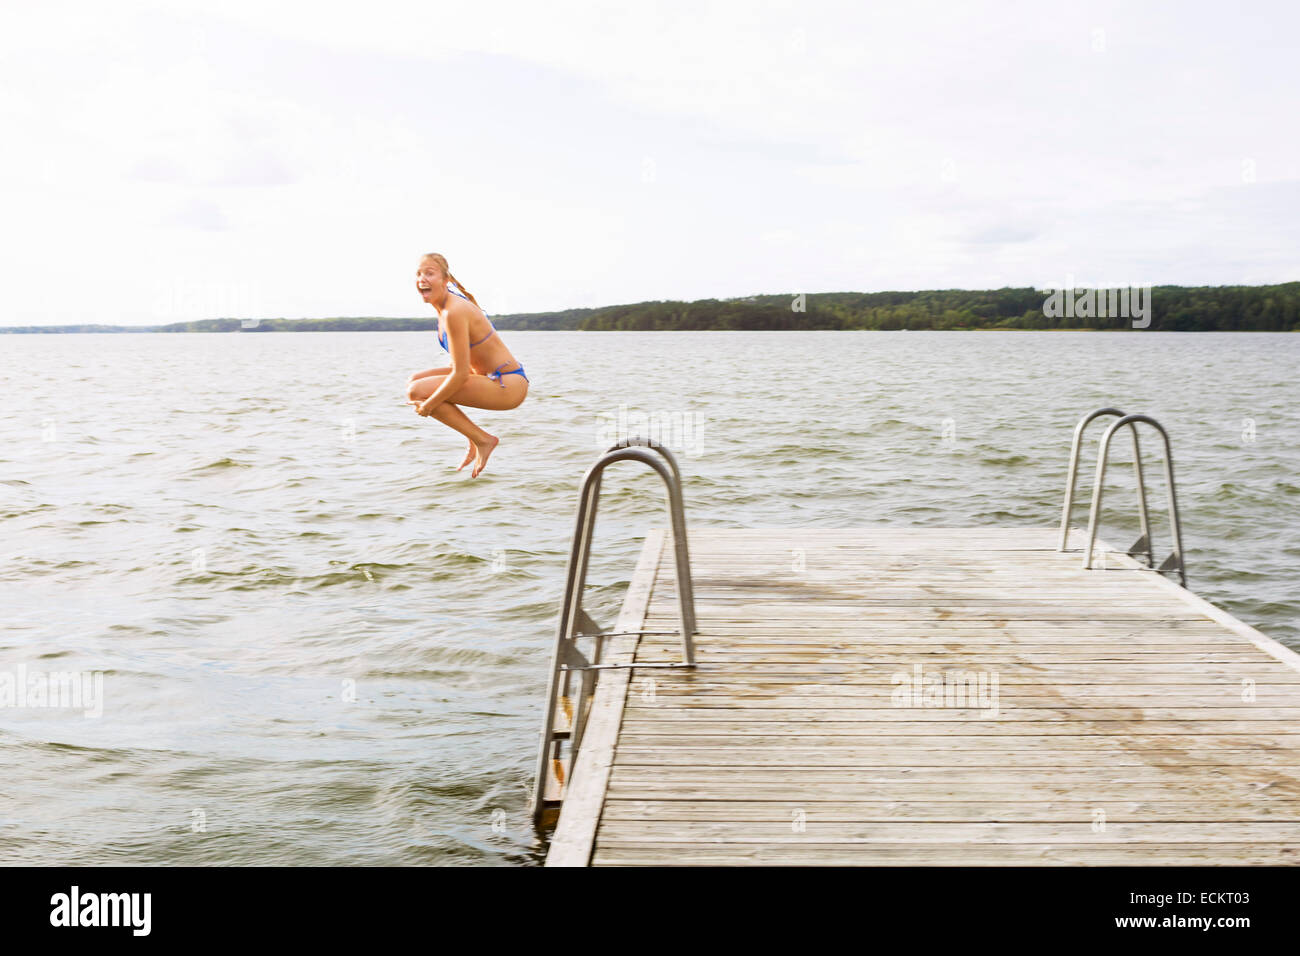 Full length side view of excited woman jumping into lake - Stock Image